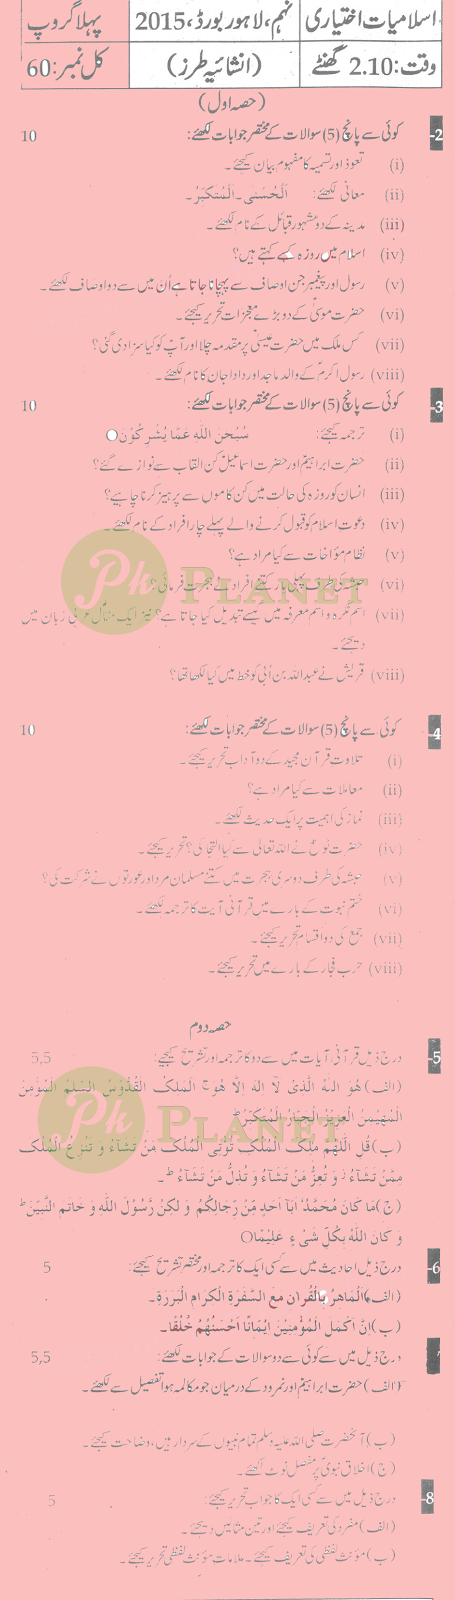 Past Papers of 9th Class Lahore Board 2015 Islamiat Elective